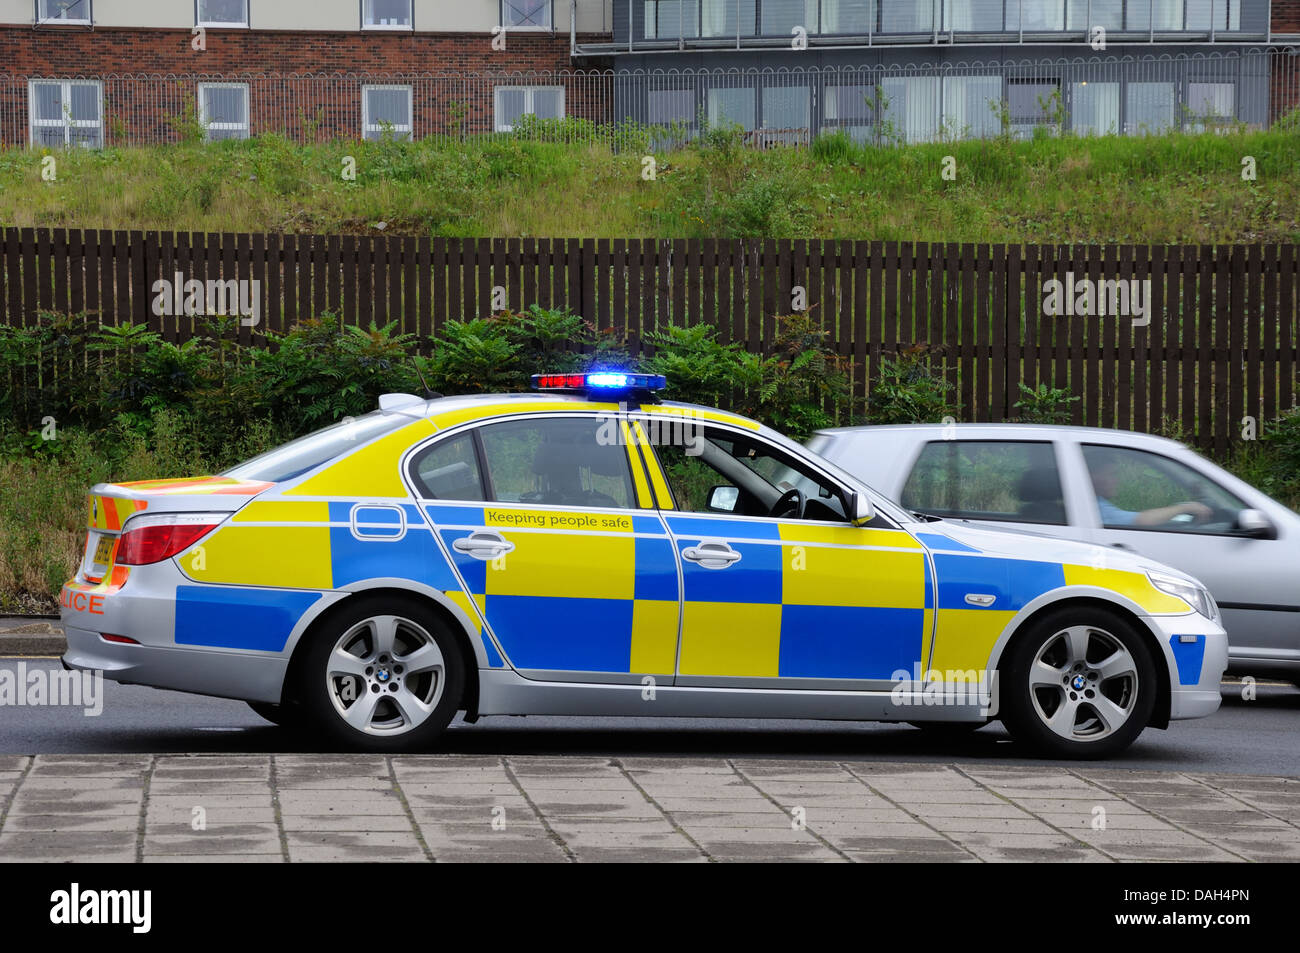 Police car with blue and yellow hi vis checkered livery Stock Photo